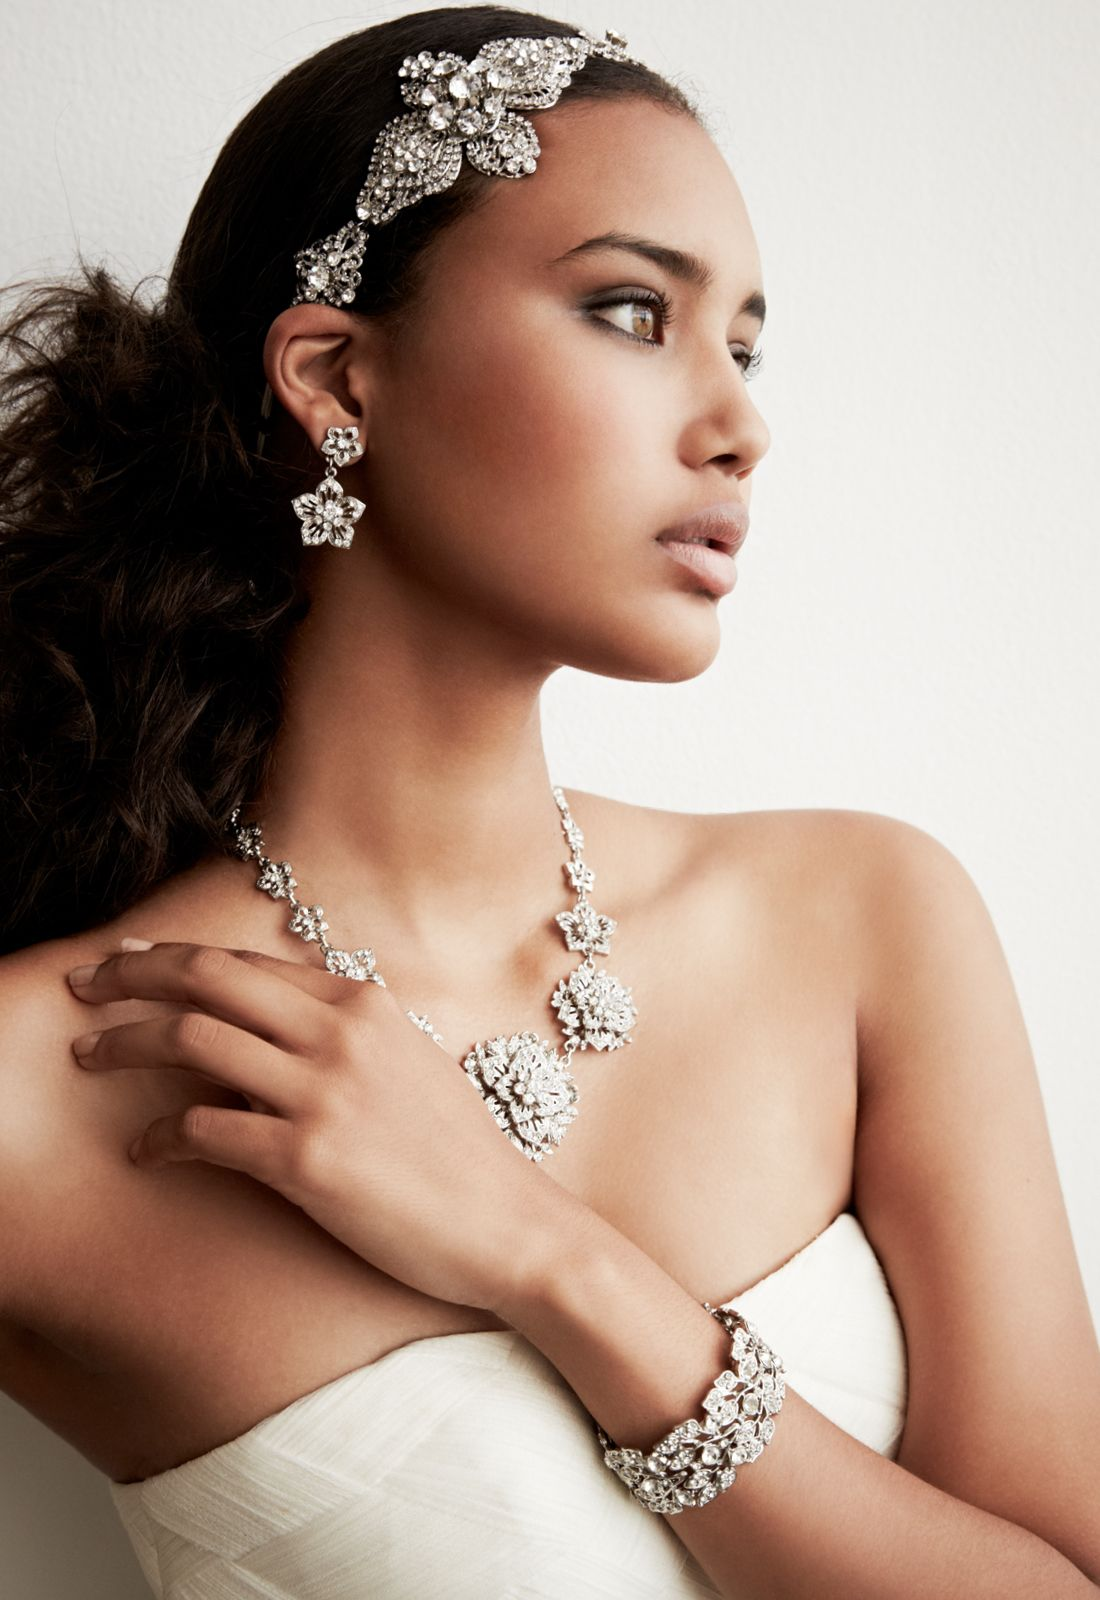 from simple to bold, shop all jewelry from david's bridal to